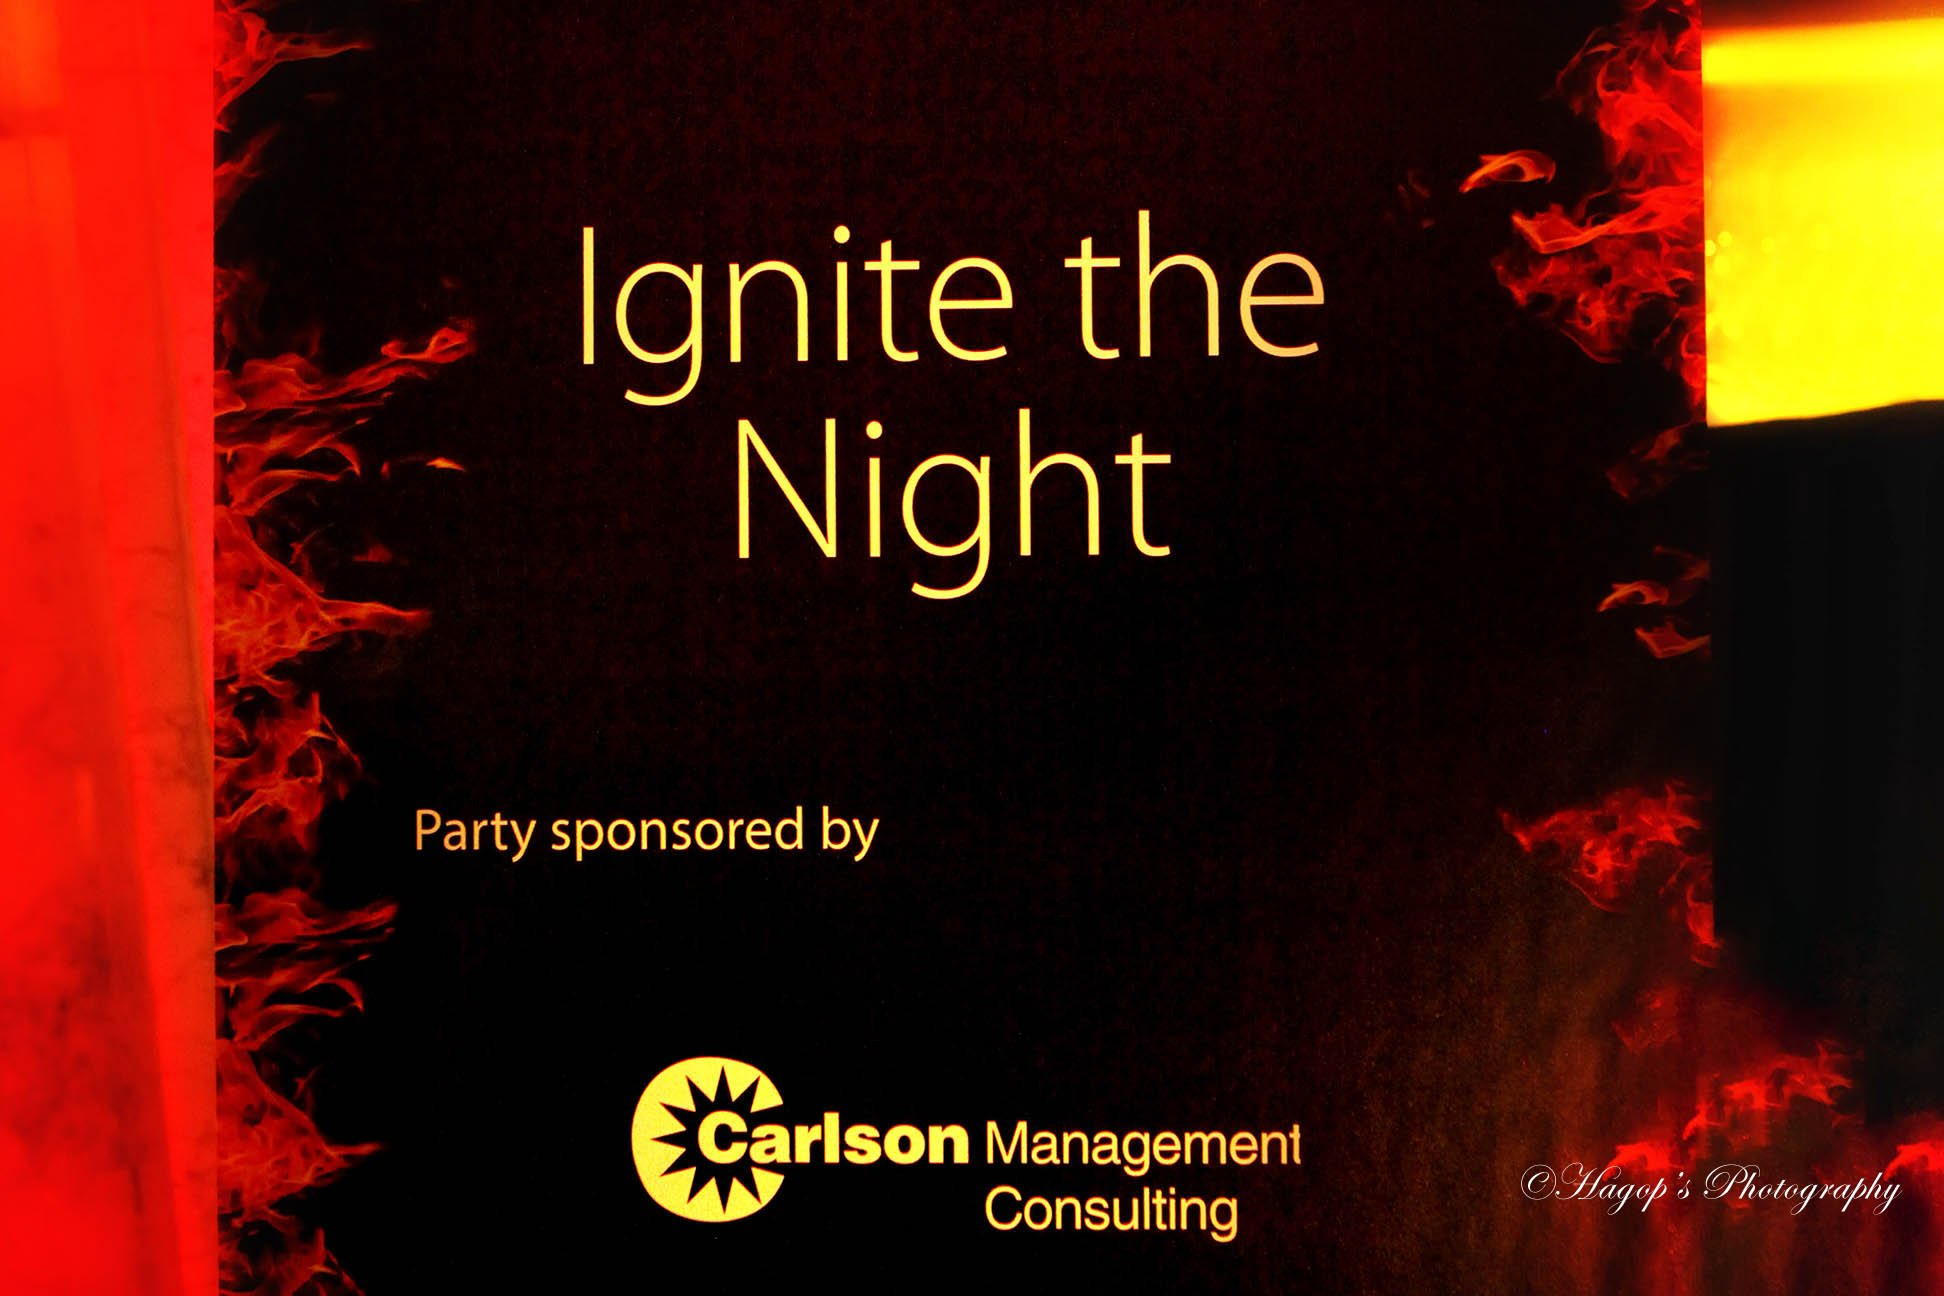 sponsor of the party sign